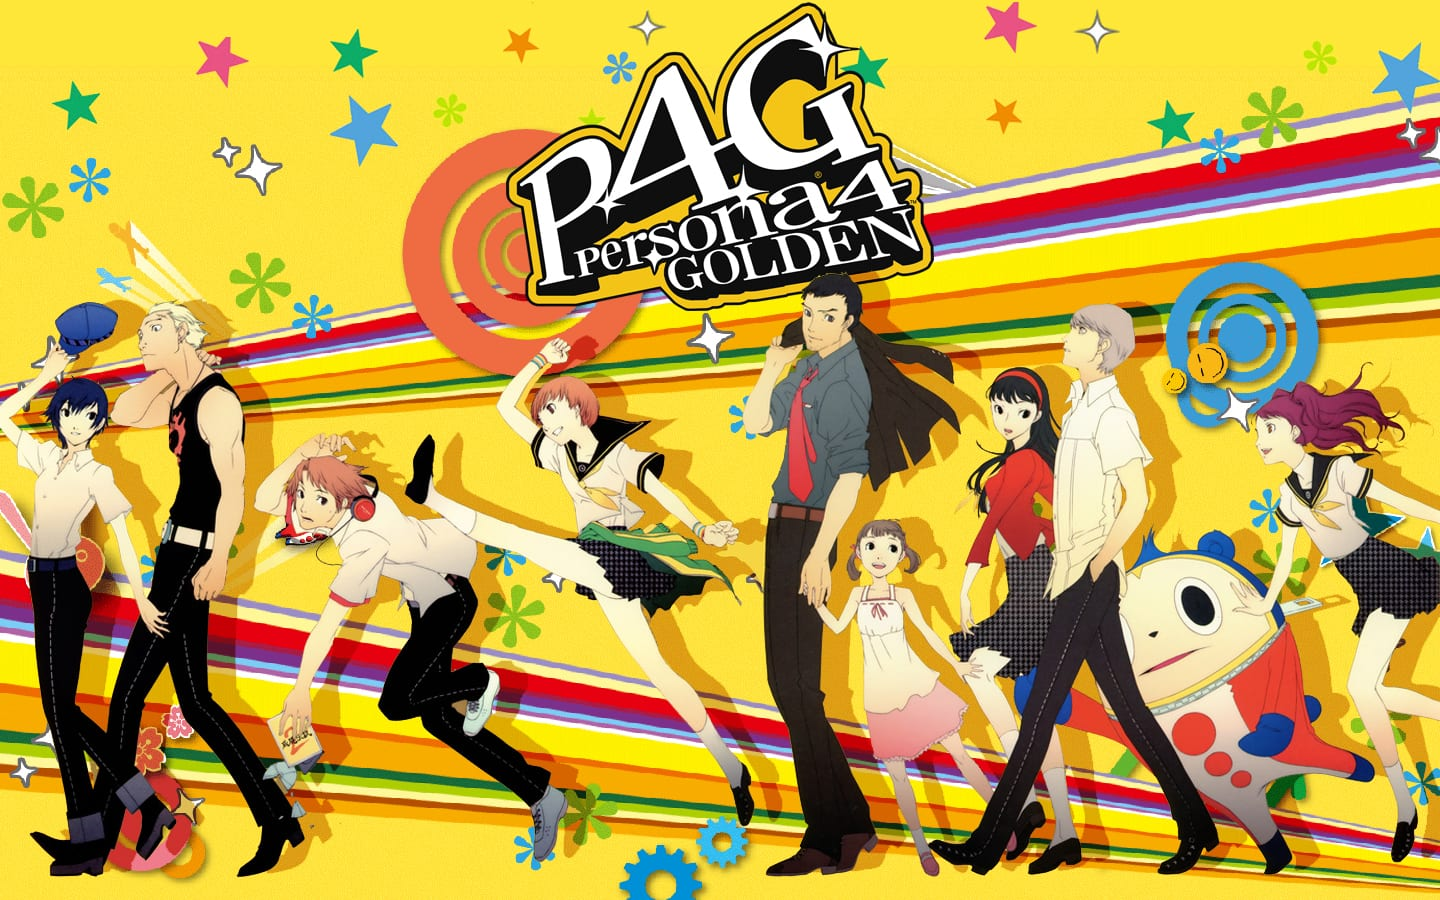 persona 4 golden romance characters